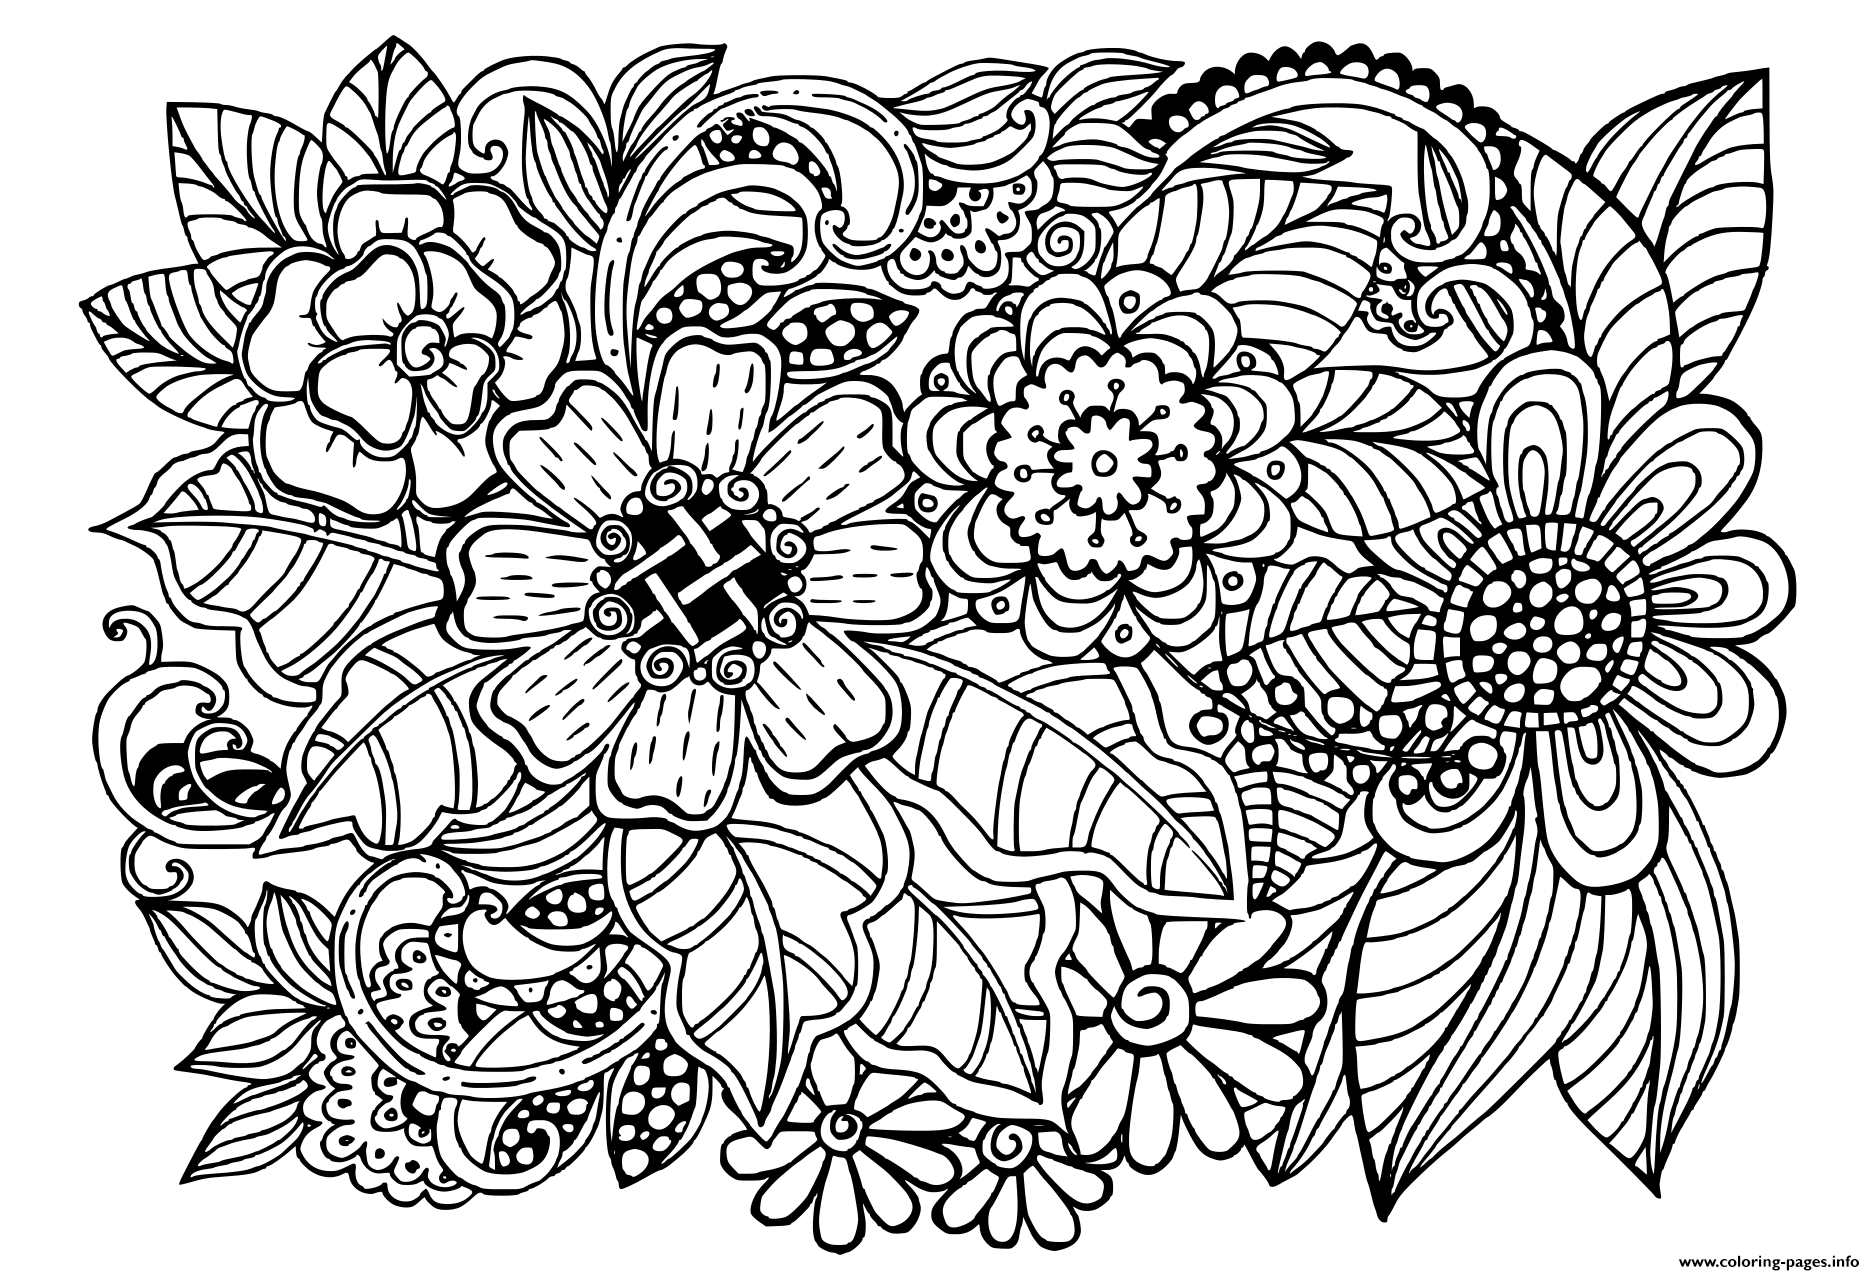 coloring patterns pages beautiful doodle floral pattern adult coloring pages printable pages coloring patterns